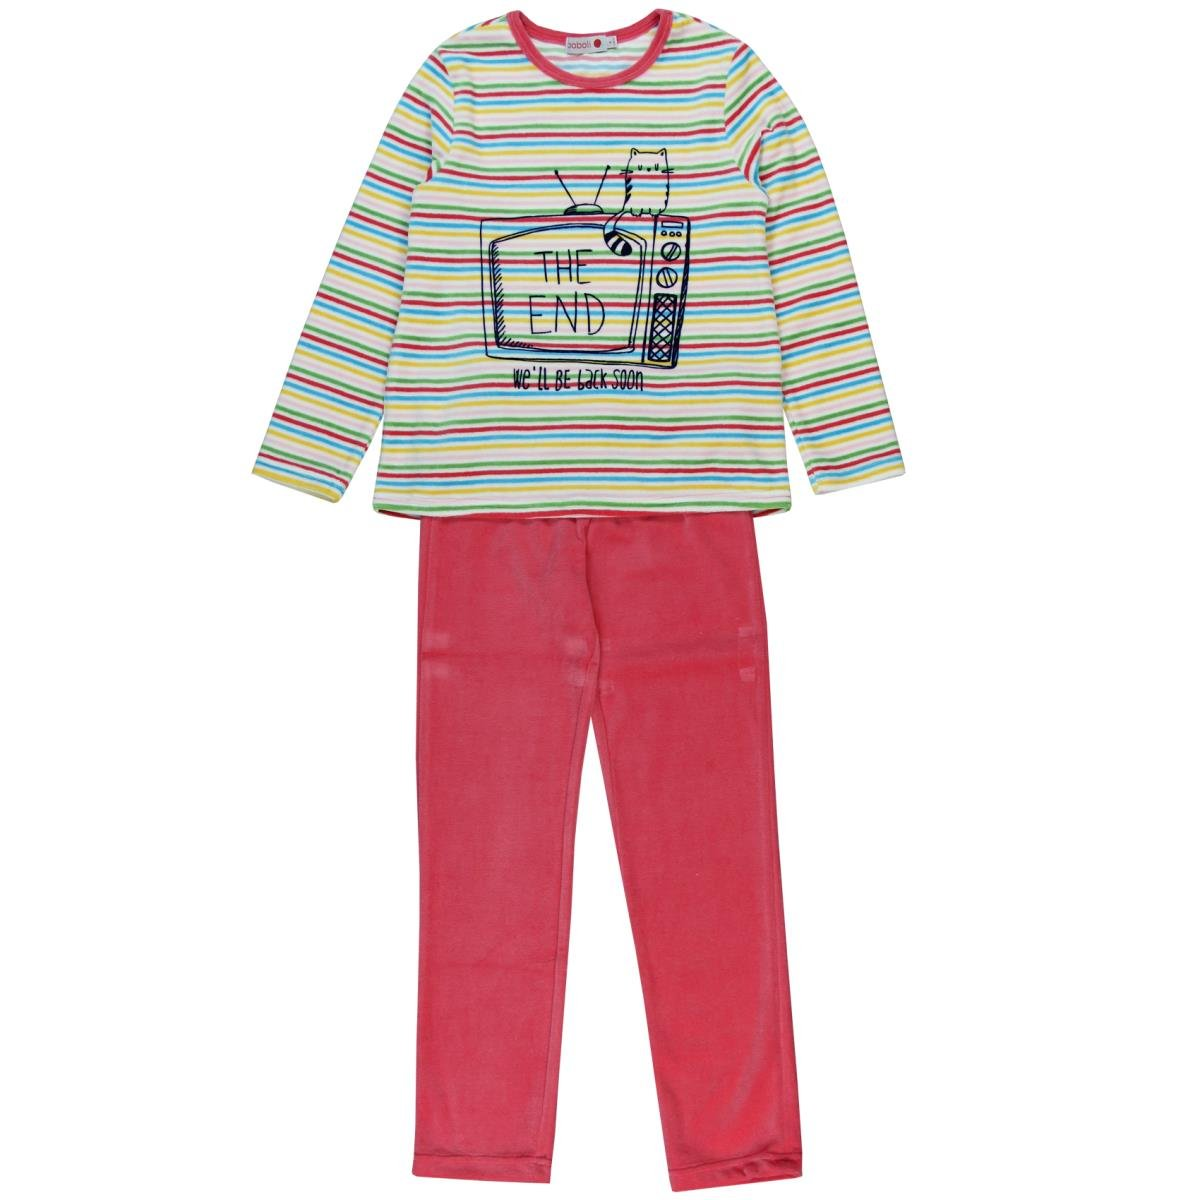 boboli Velour Pyjamas for Girl, Pigiama Bambina